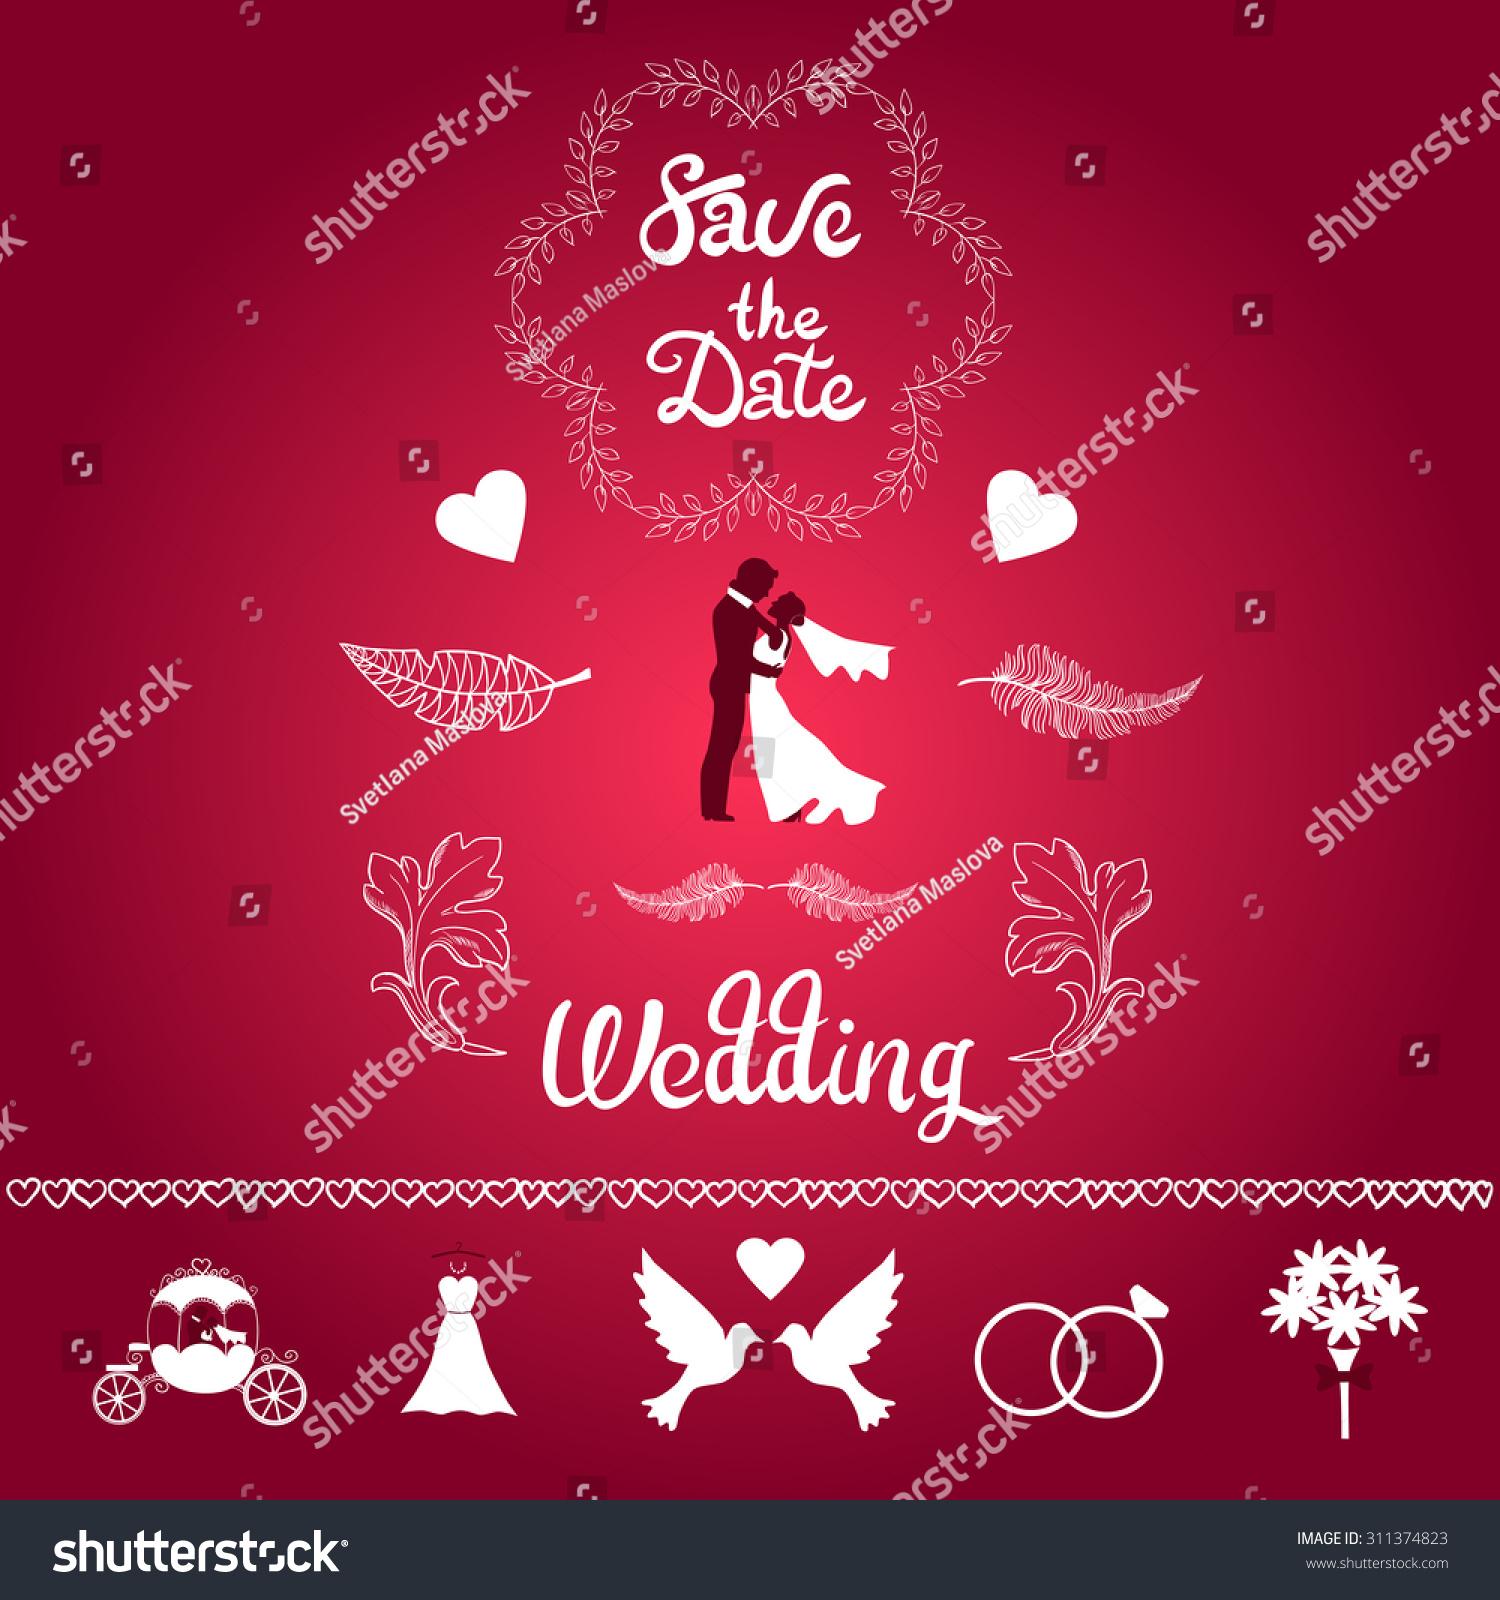 Wedding Set Bride Groom Doves Wedding Stock Vector (Royalty Free ...